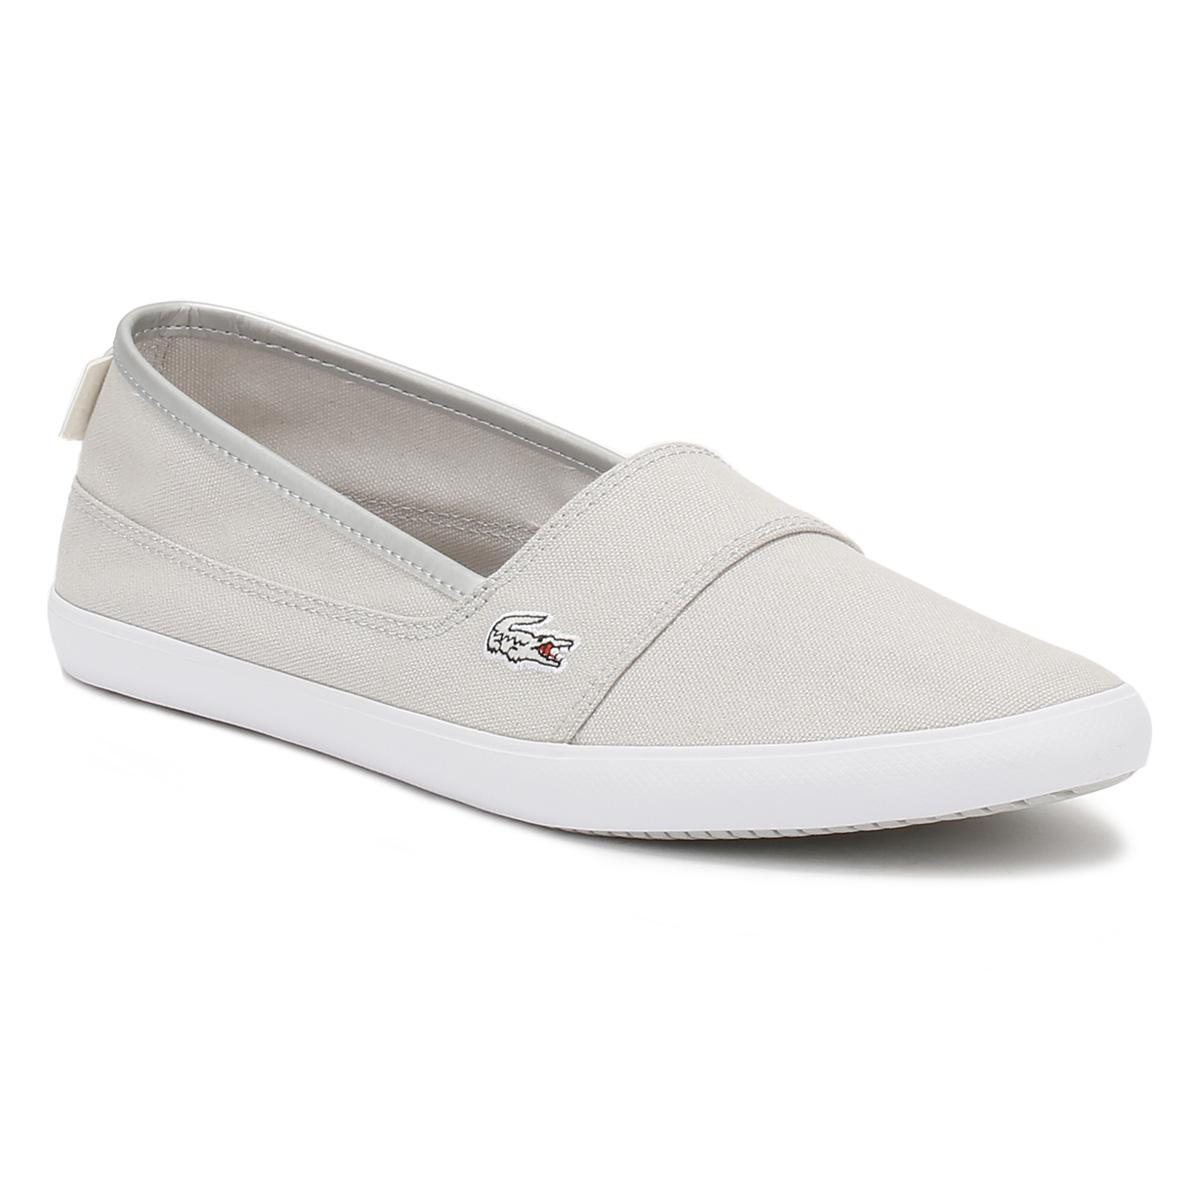 b84690dde Lyst - Lacoste Womens Light Grey Marice 217 2 Caw Trainers in Gray